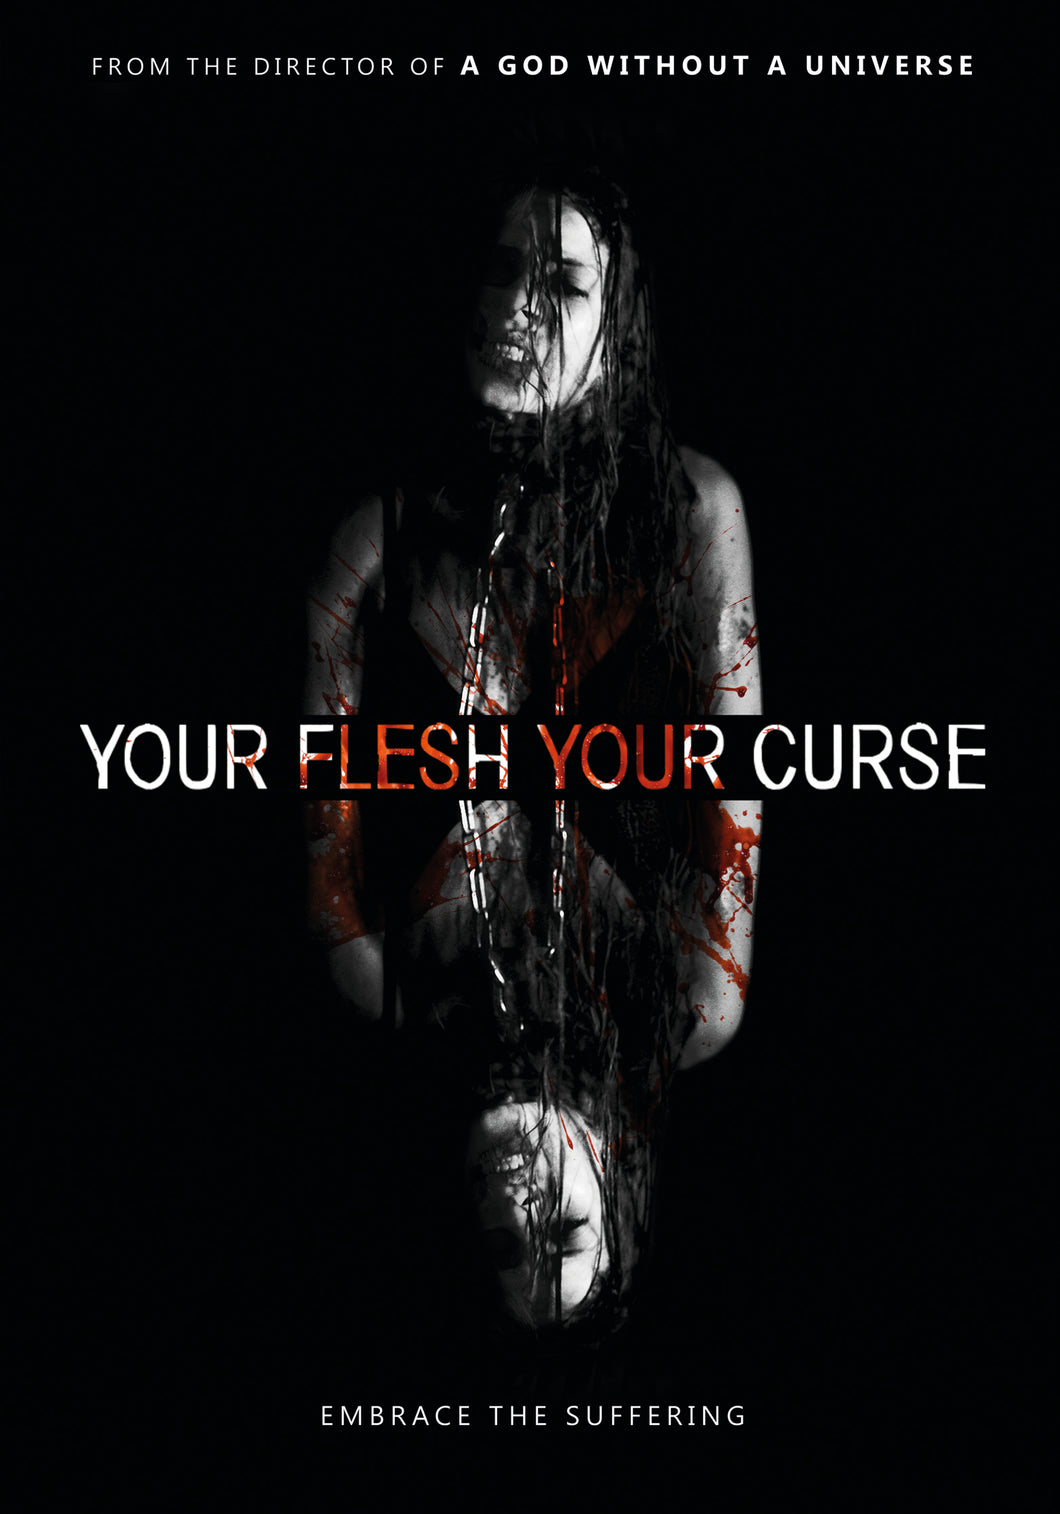 YOUR FLESH YOUR CURSE SLIPCASE - AWARD WINNING MOVIES